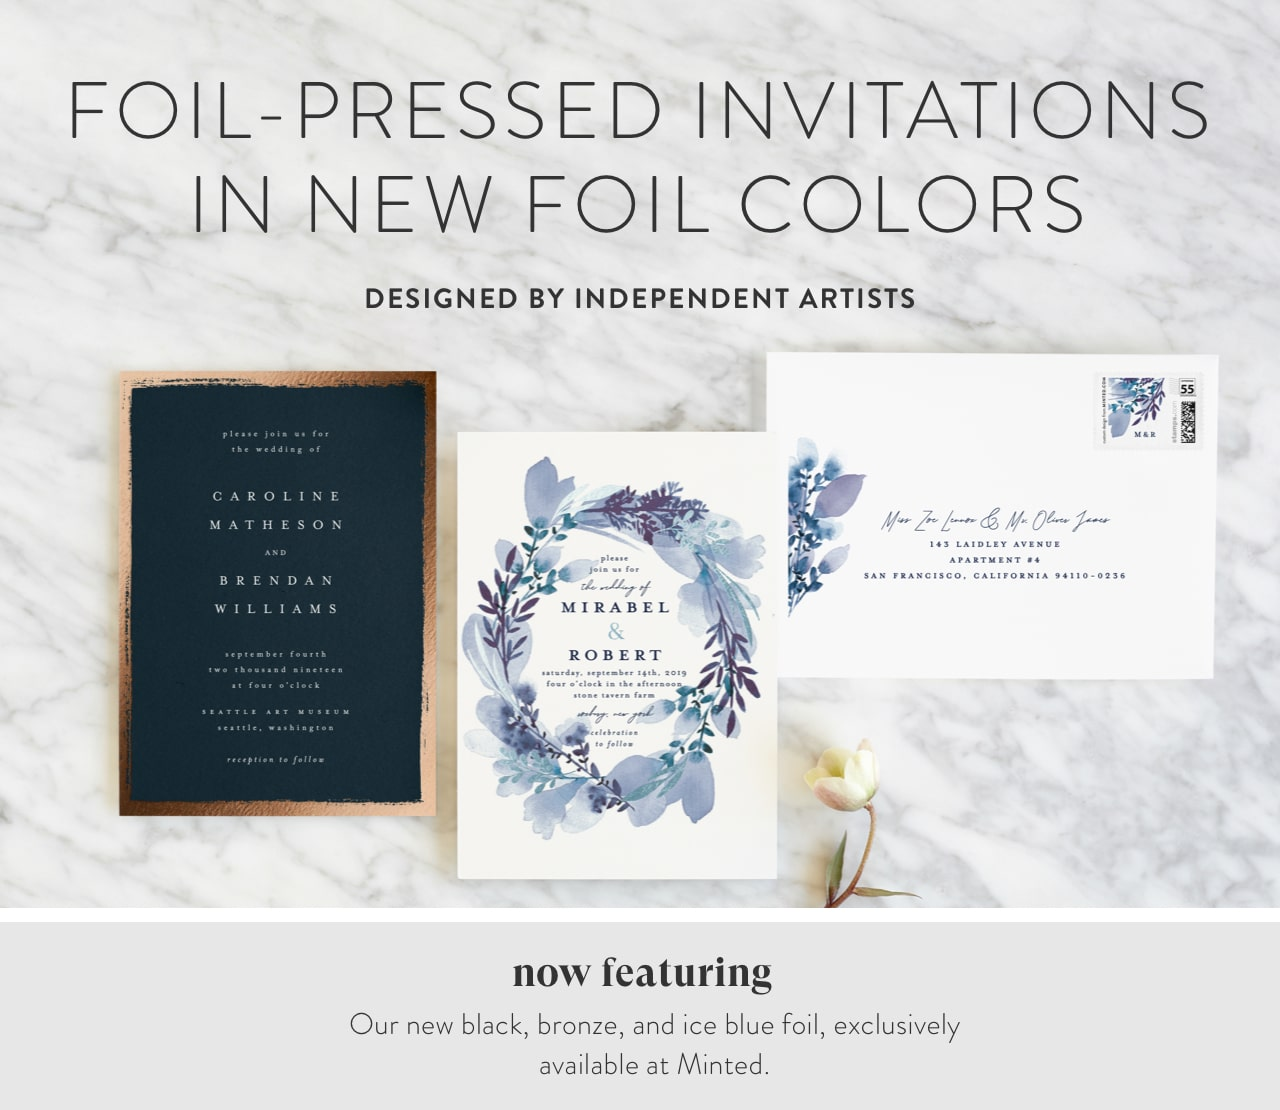 New Foil-Pressed Invitations (Foil Colors)